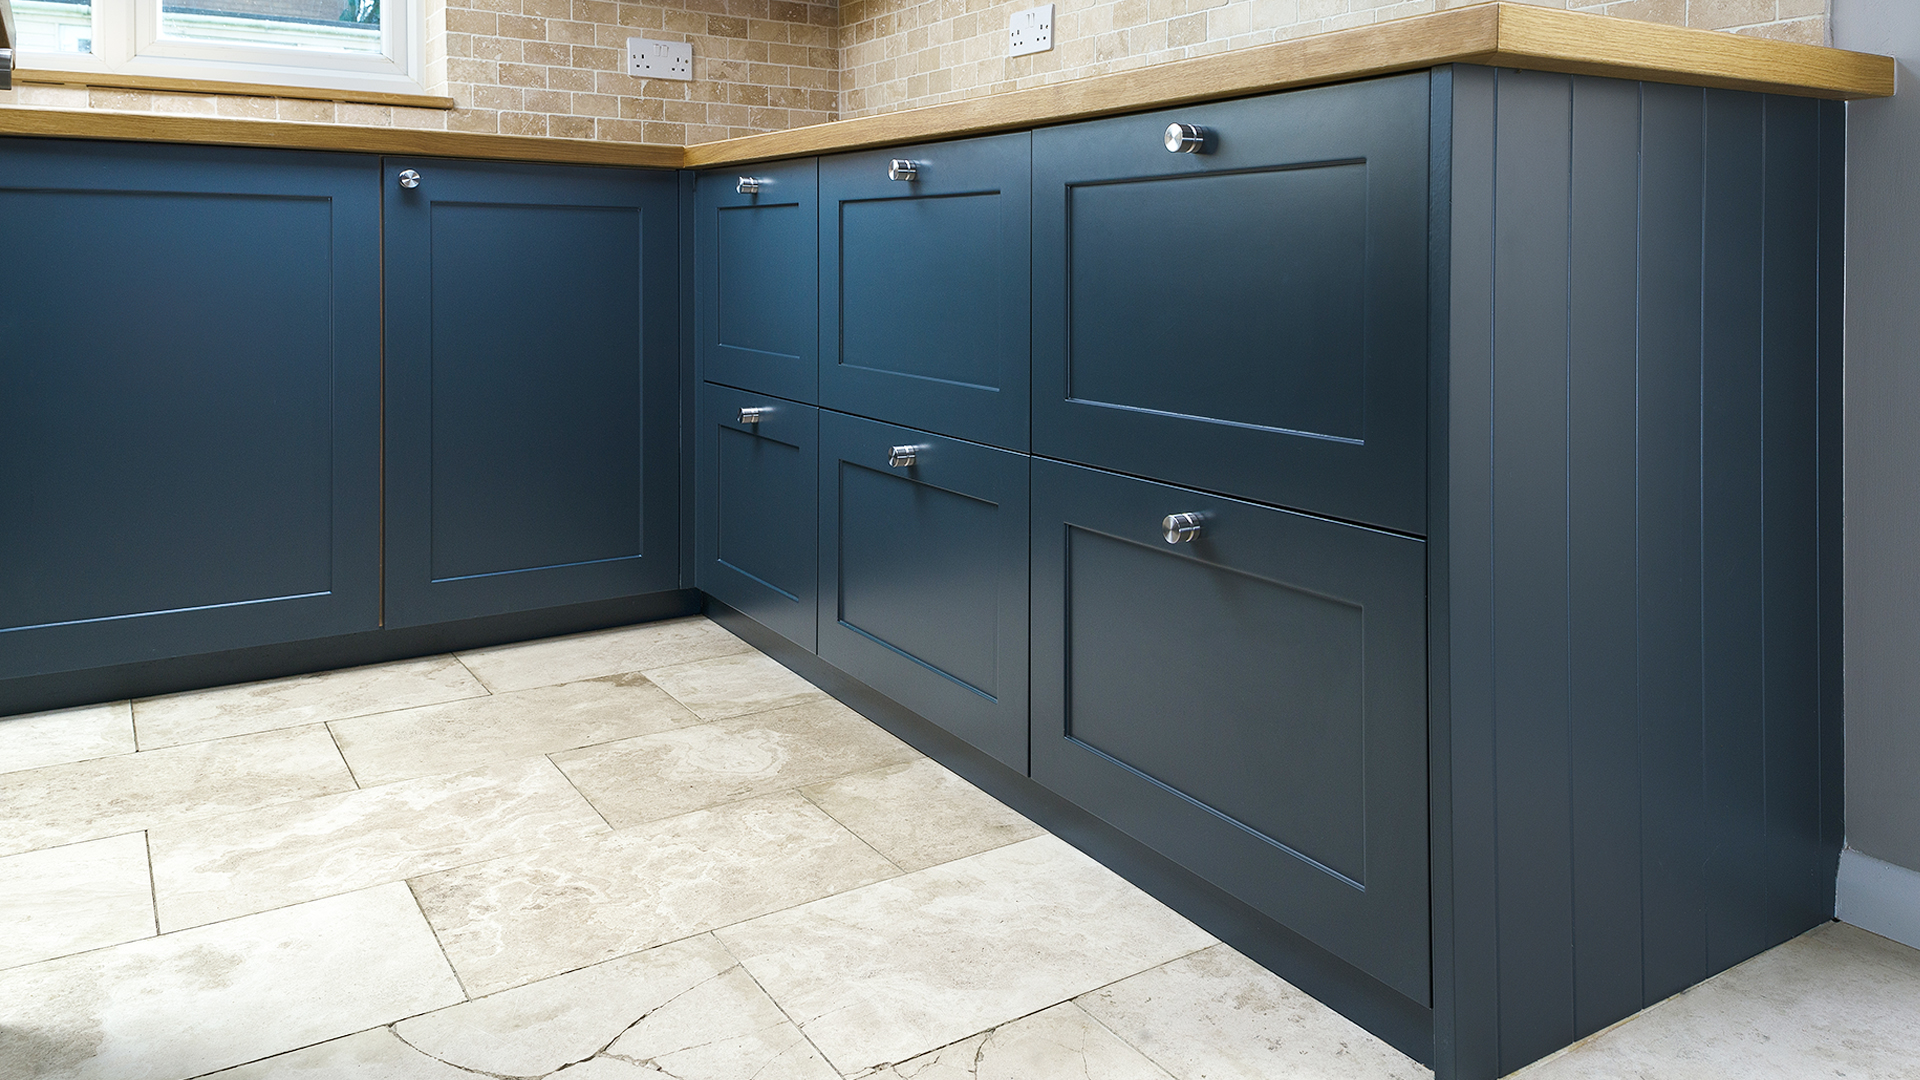 Kitchen Shaker Doors & Bespoke Internal \u0026 External Shaker Door Specialists In Oxfordshire.